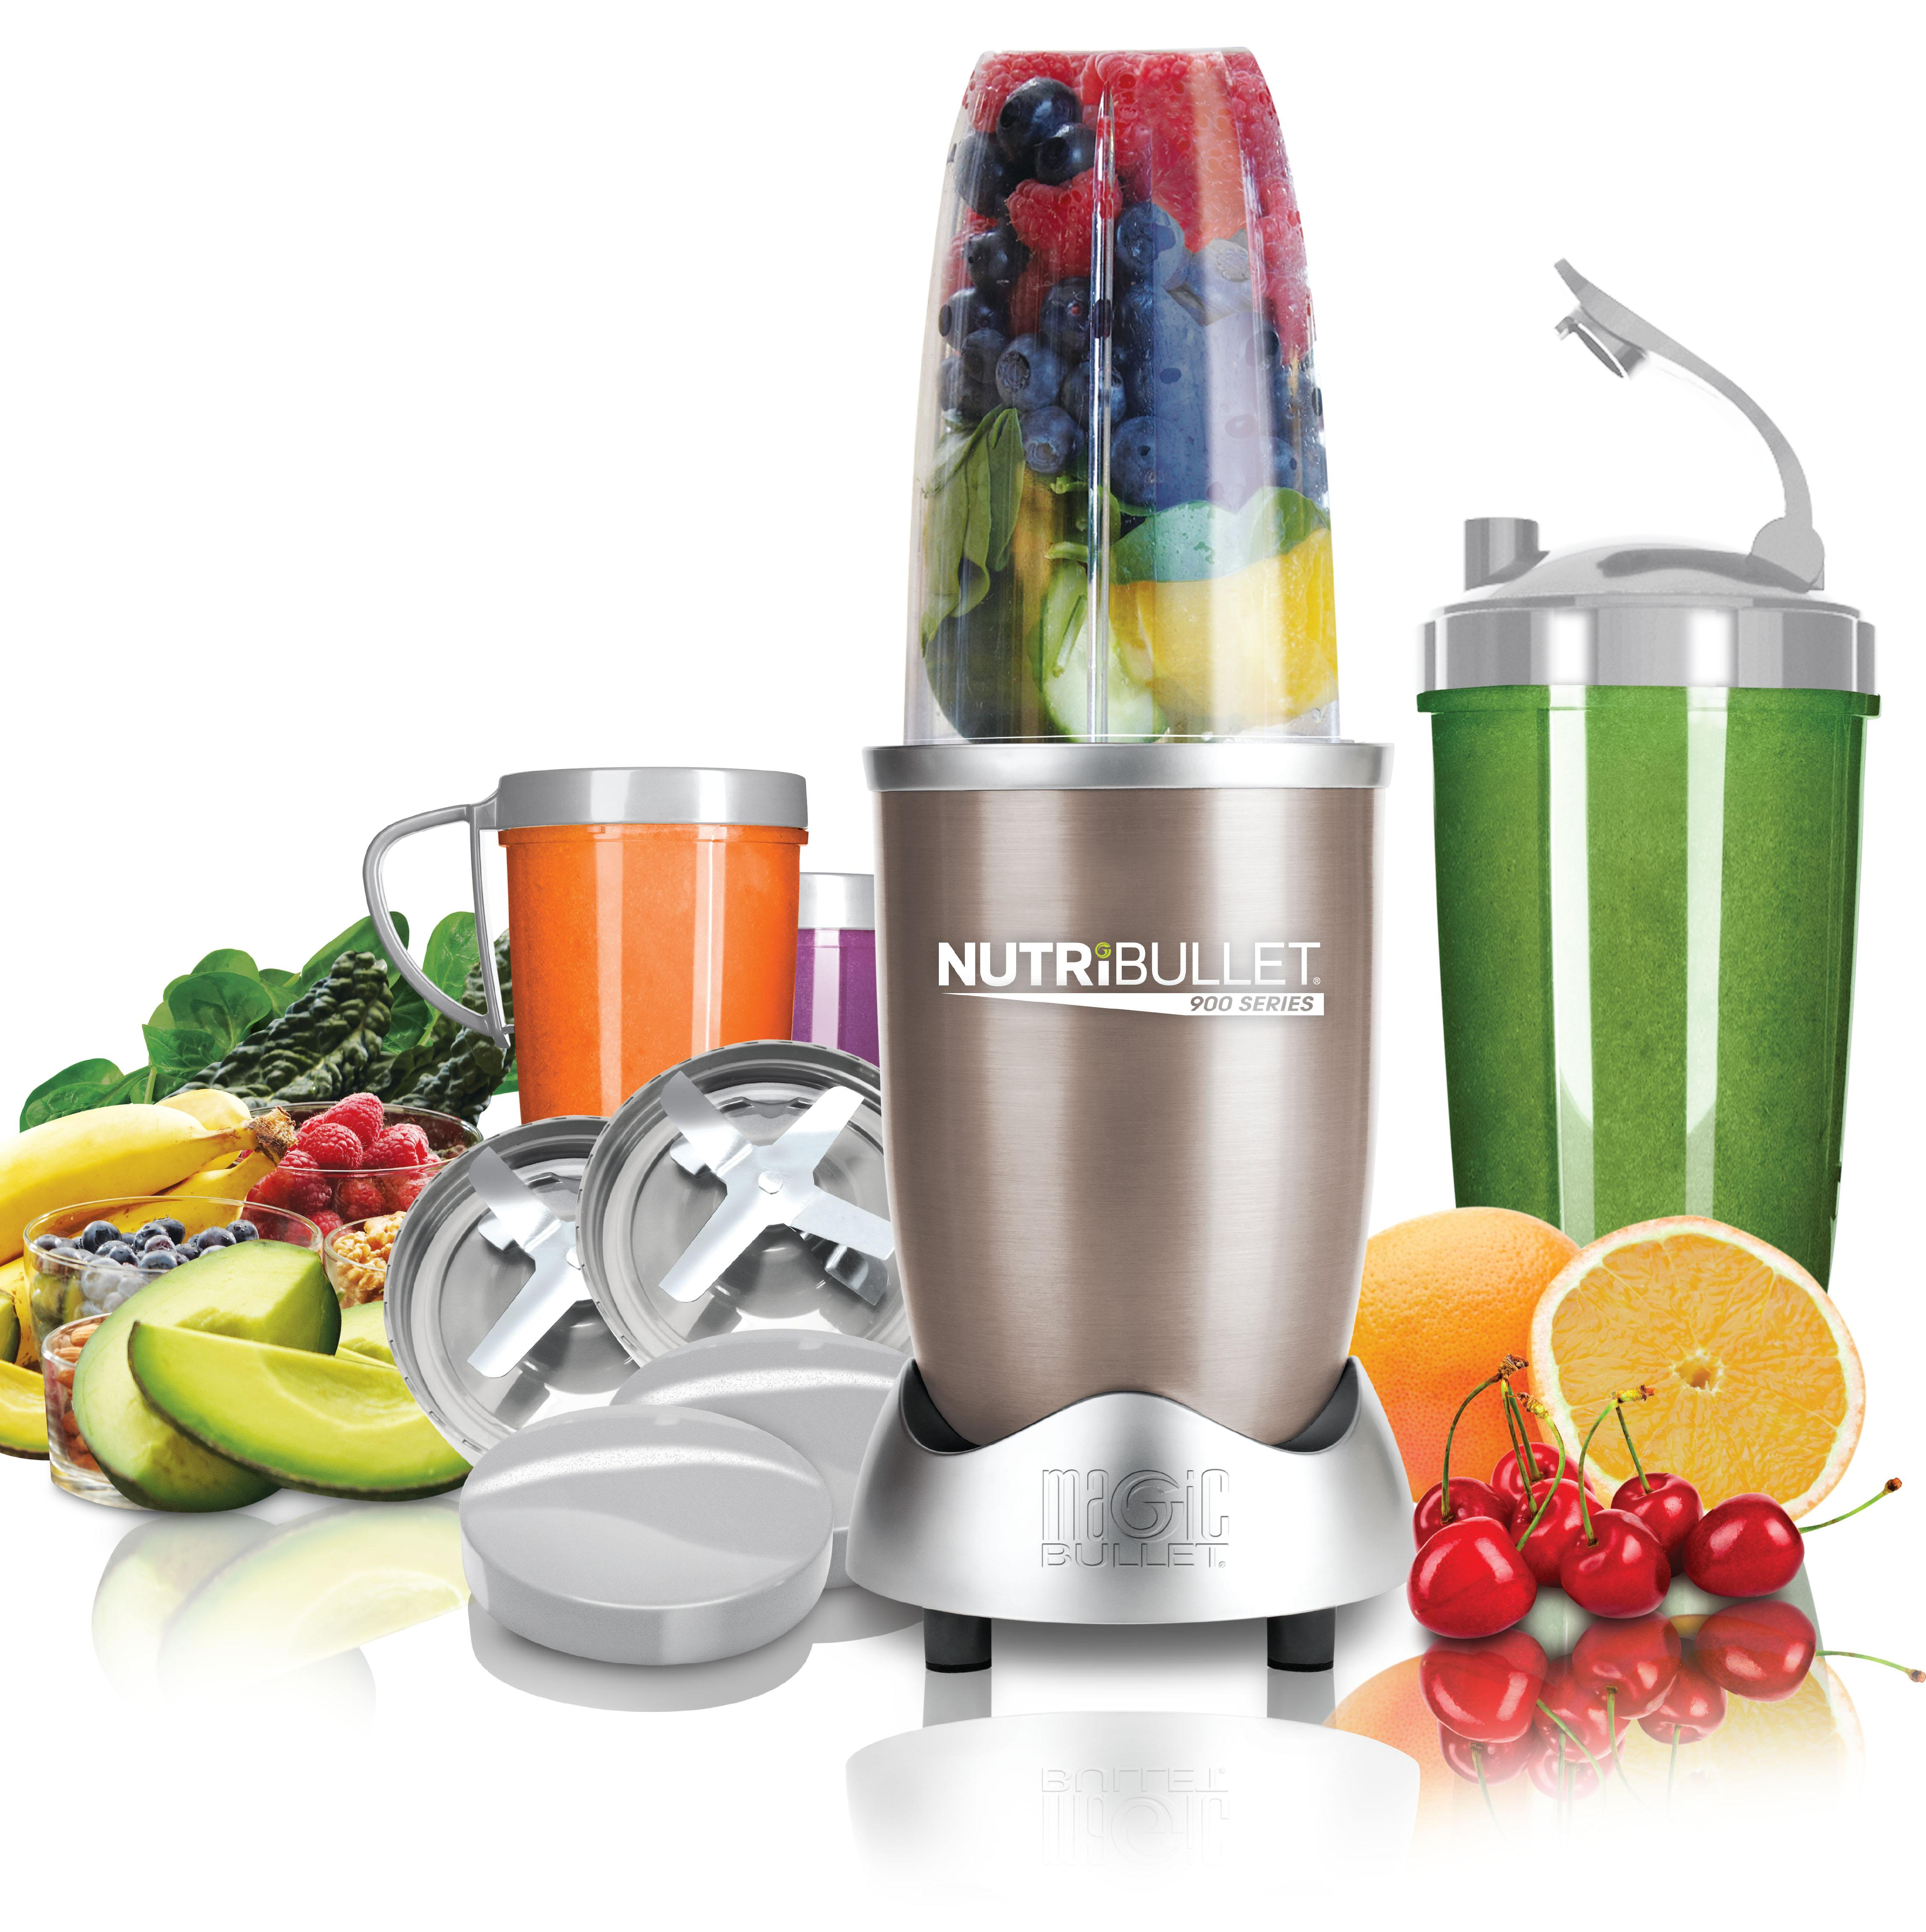 nutribullet pro 900 series extractor blender 15 piece set. Black Bedroom Furniture Sets. Home Design Ideas